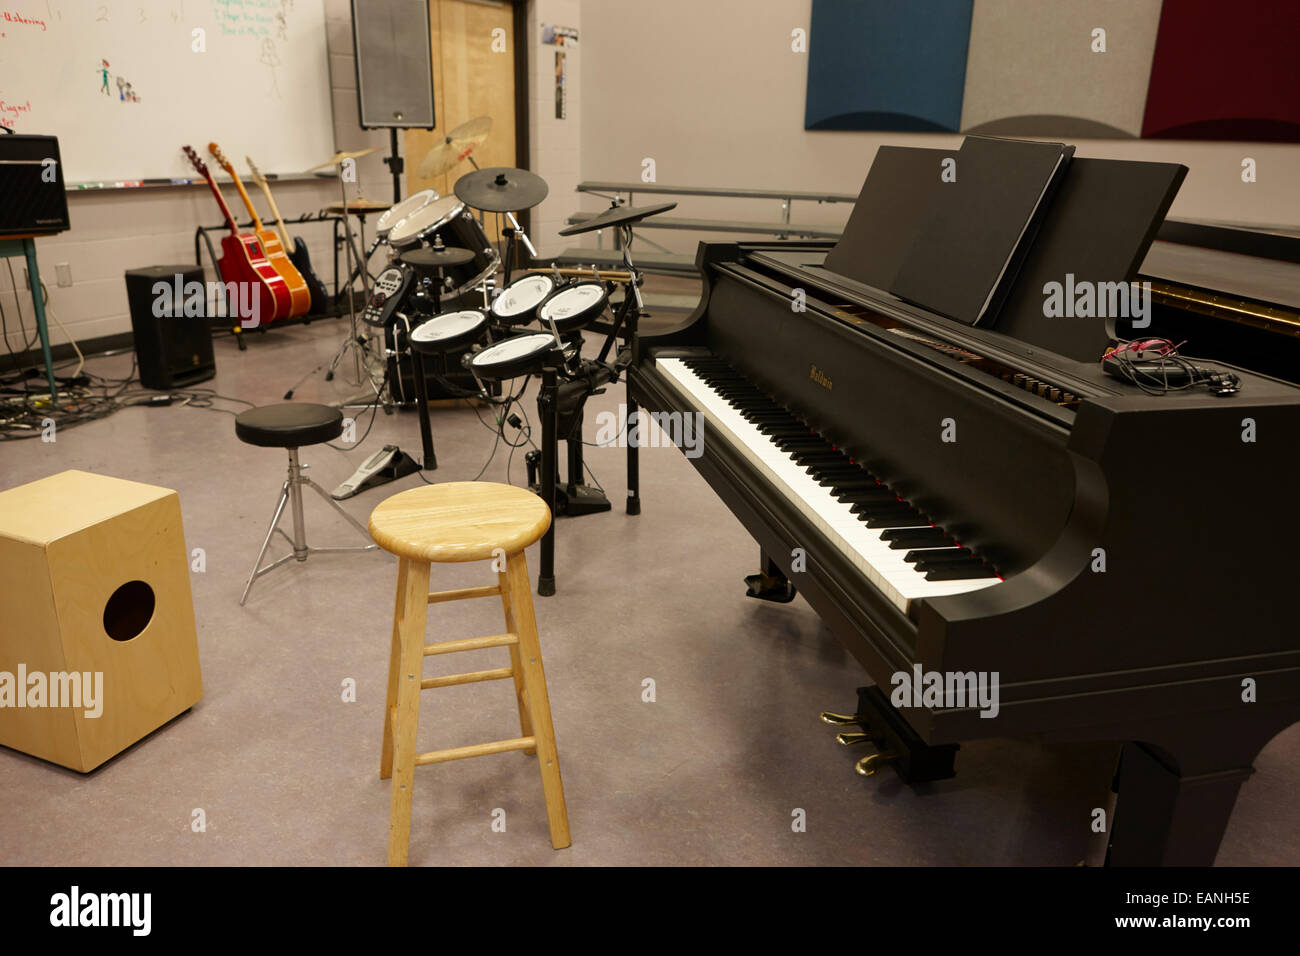 Empty room with chair violin and sheet music on floor photograph - Baby Grand Piano In A Music Training Room Stock Image